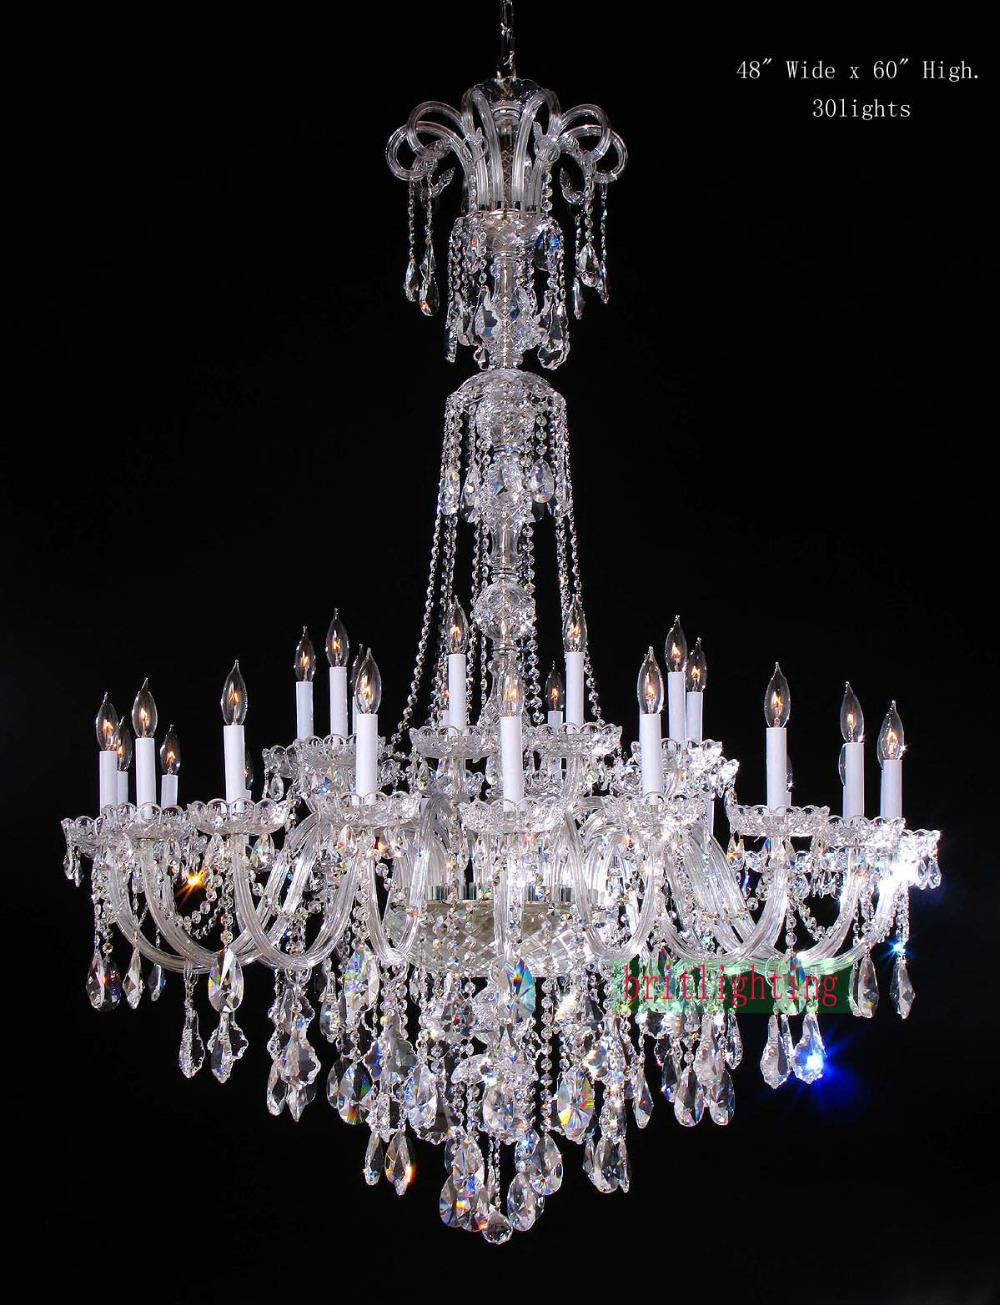 Lamp Modern Crystal Chandeliers 5 Star Hotel Chandelier Led Candle Large Elegant Foyer Ceiling Light Pendant Hanging